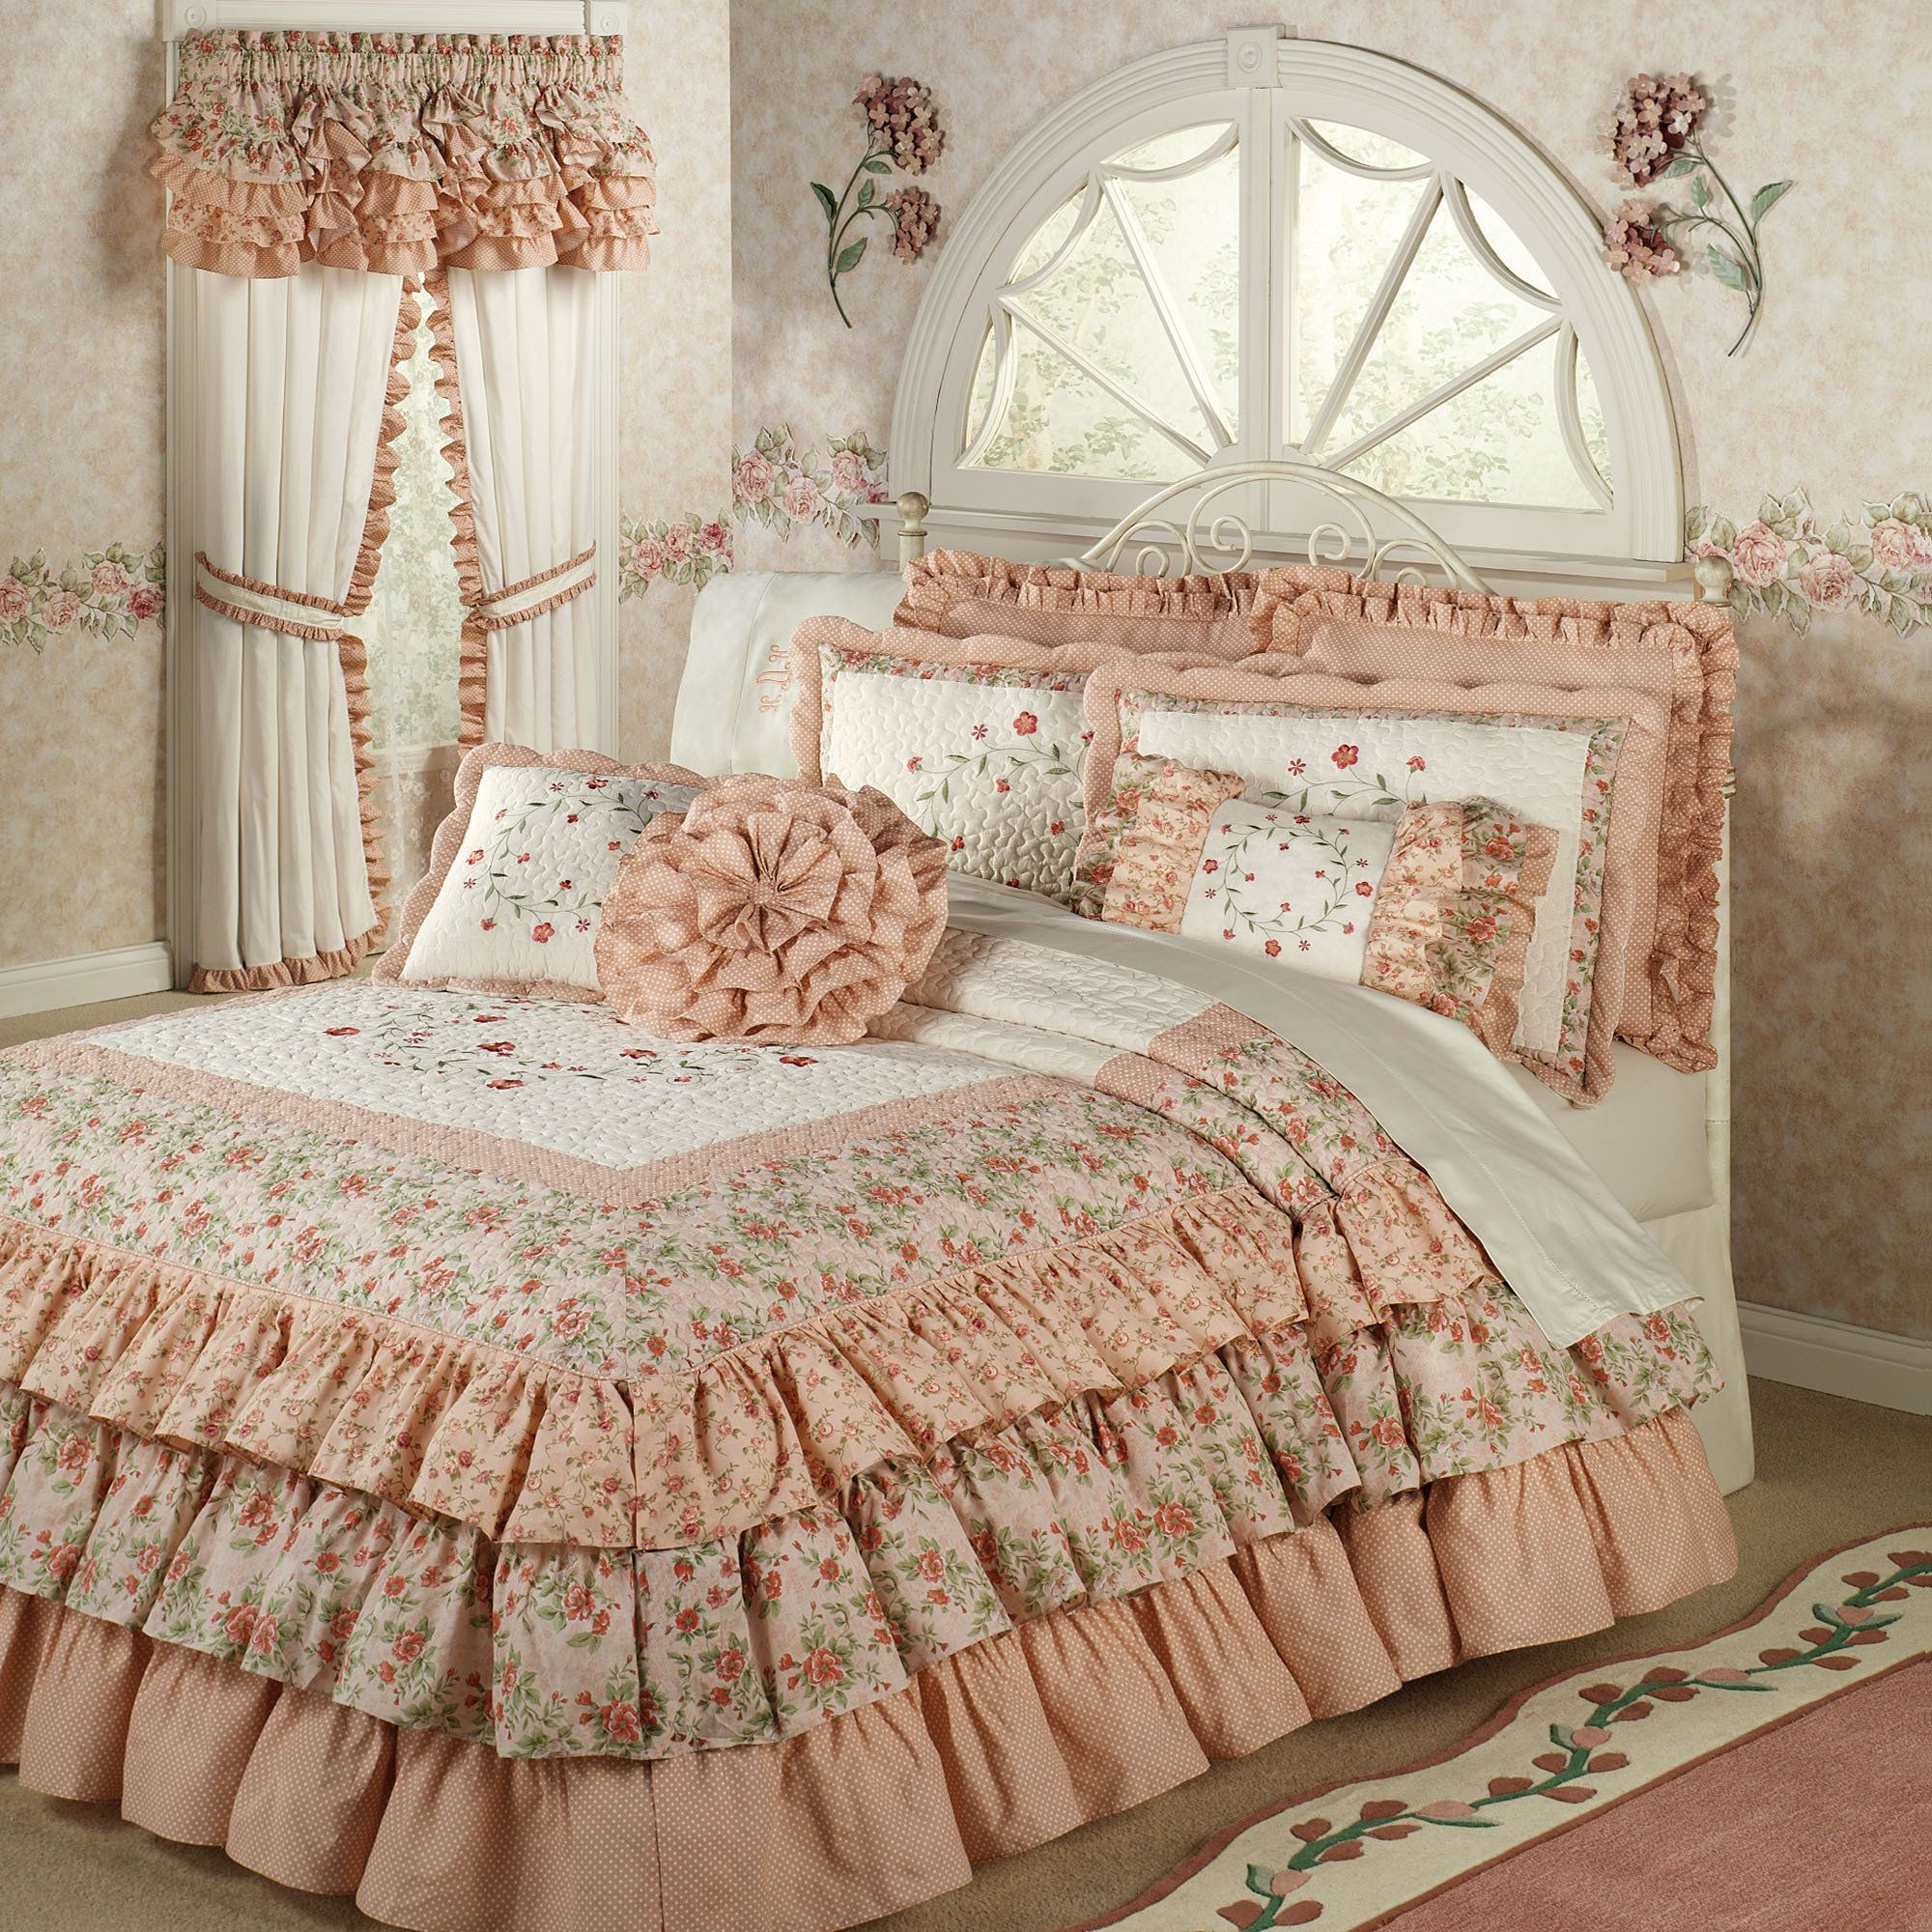 Melody Floral Ruffled Grande King Bedspread Bedding